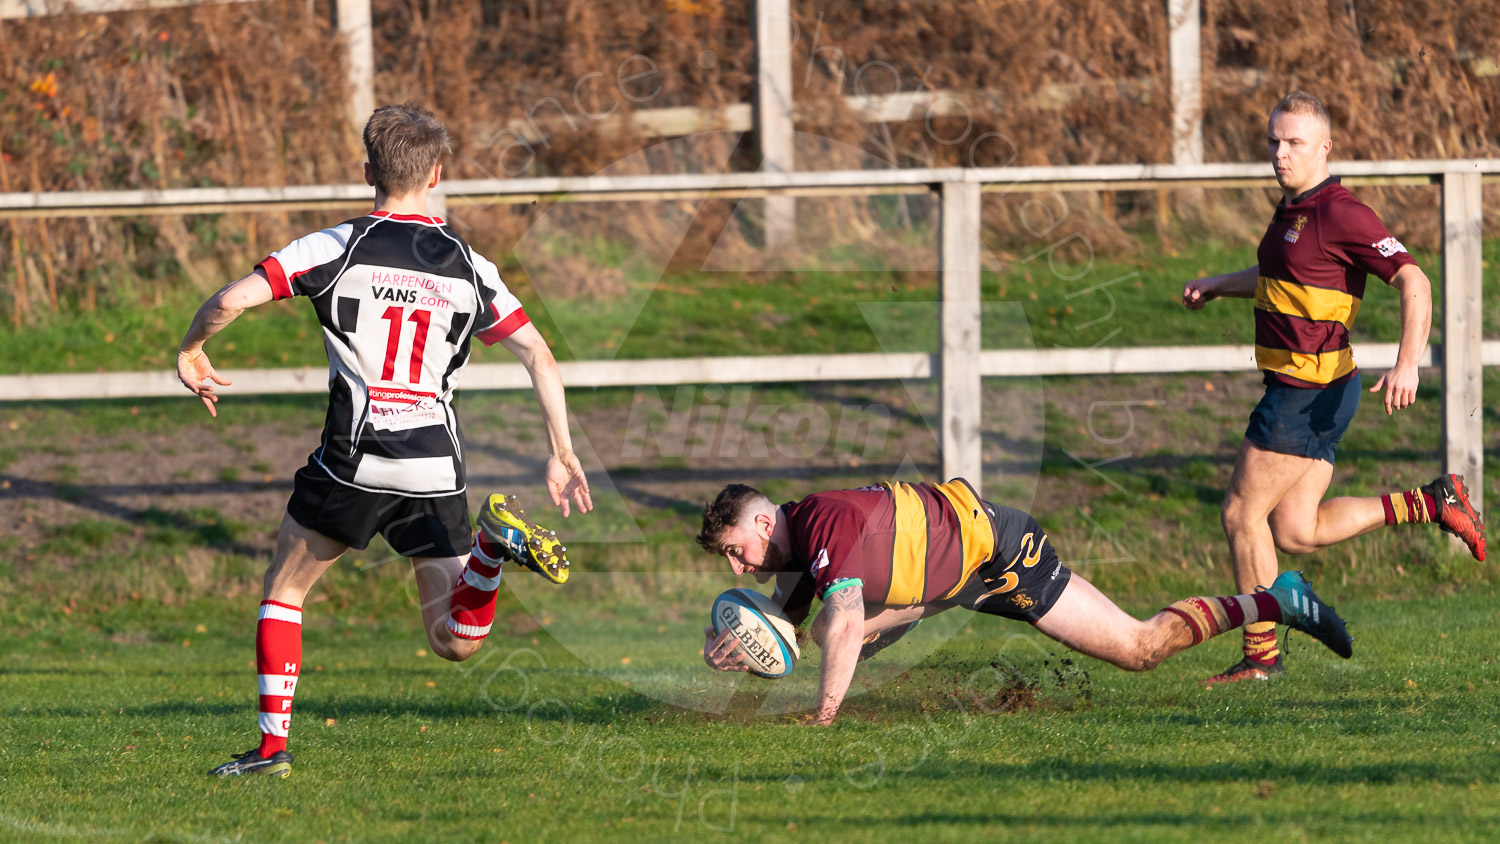 The ultimate in sportsmanship - Self tackle by Will Norford (Photo: Iain Frankish, Actuance Photography)